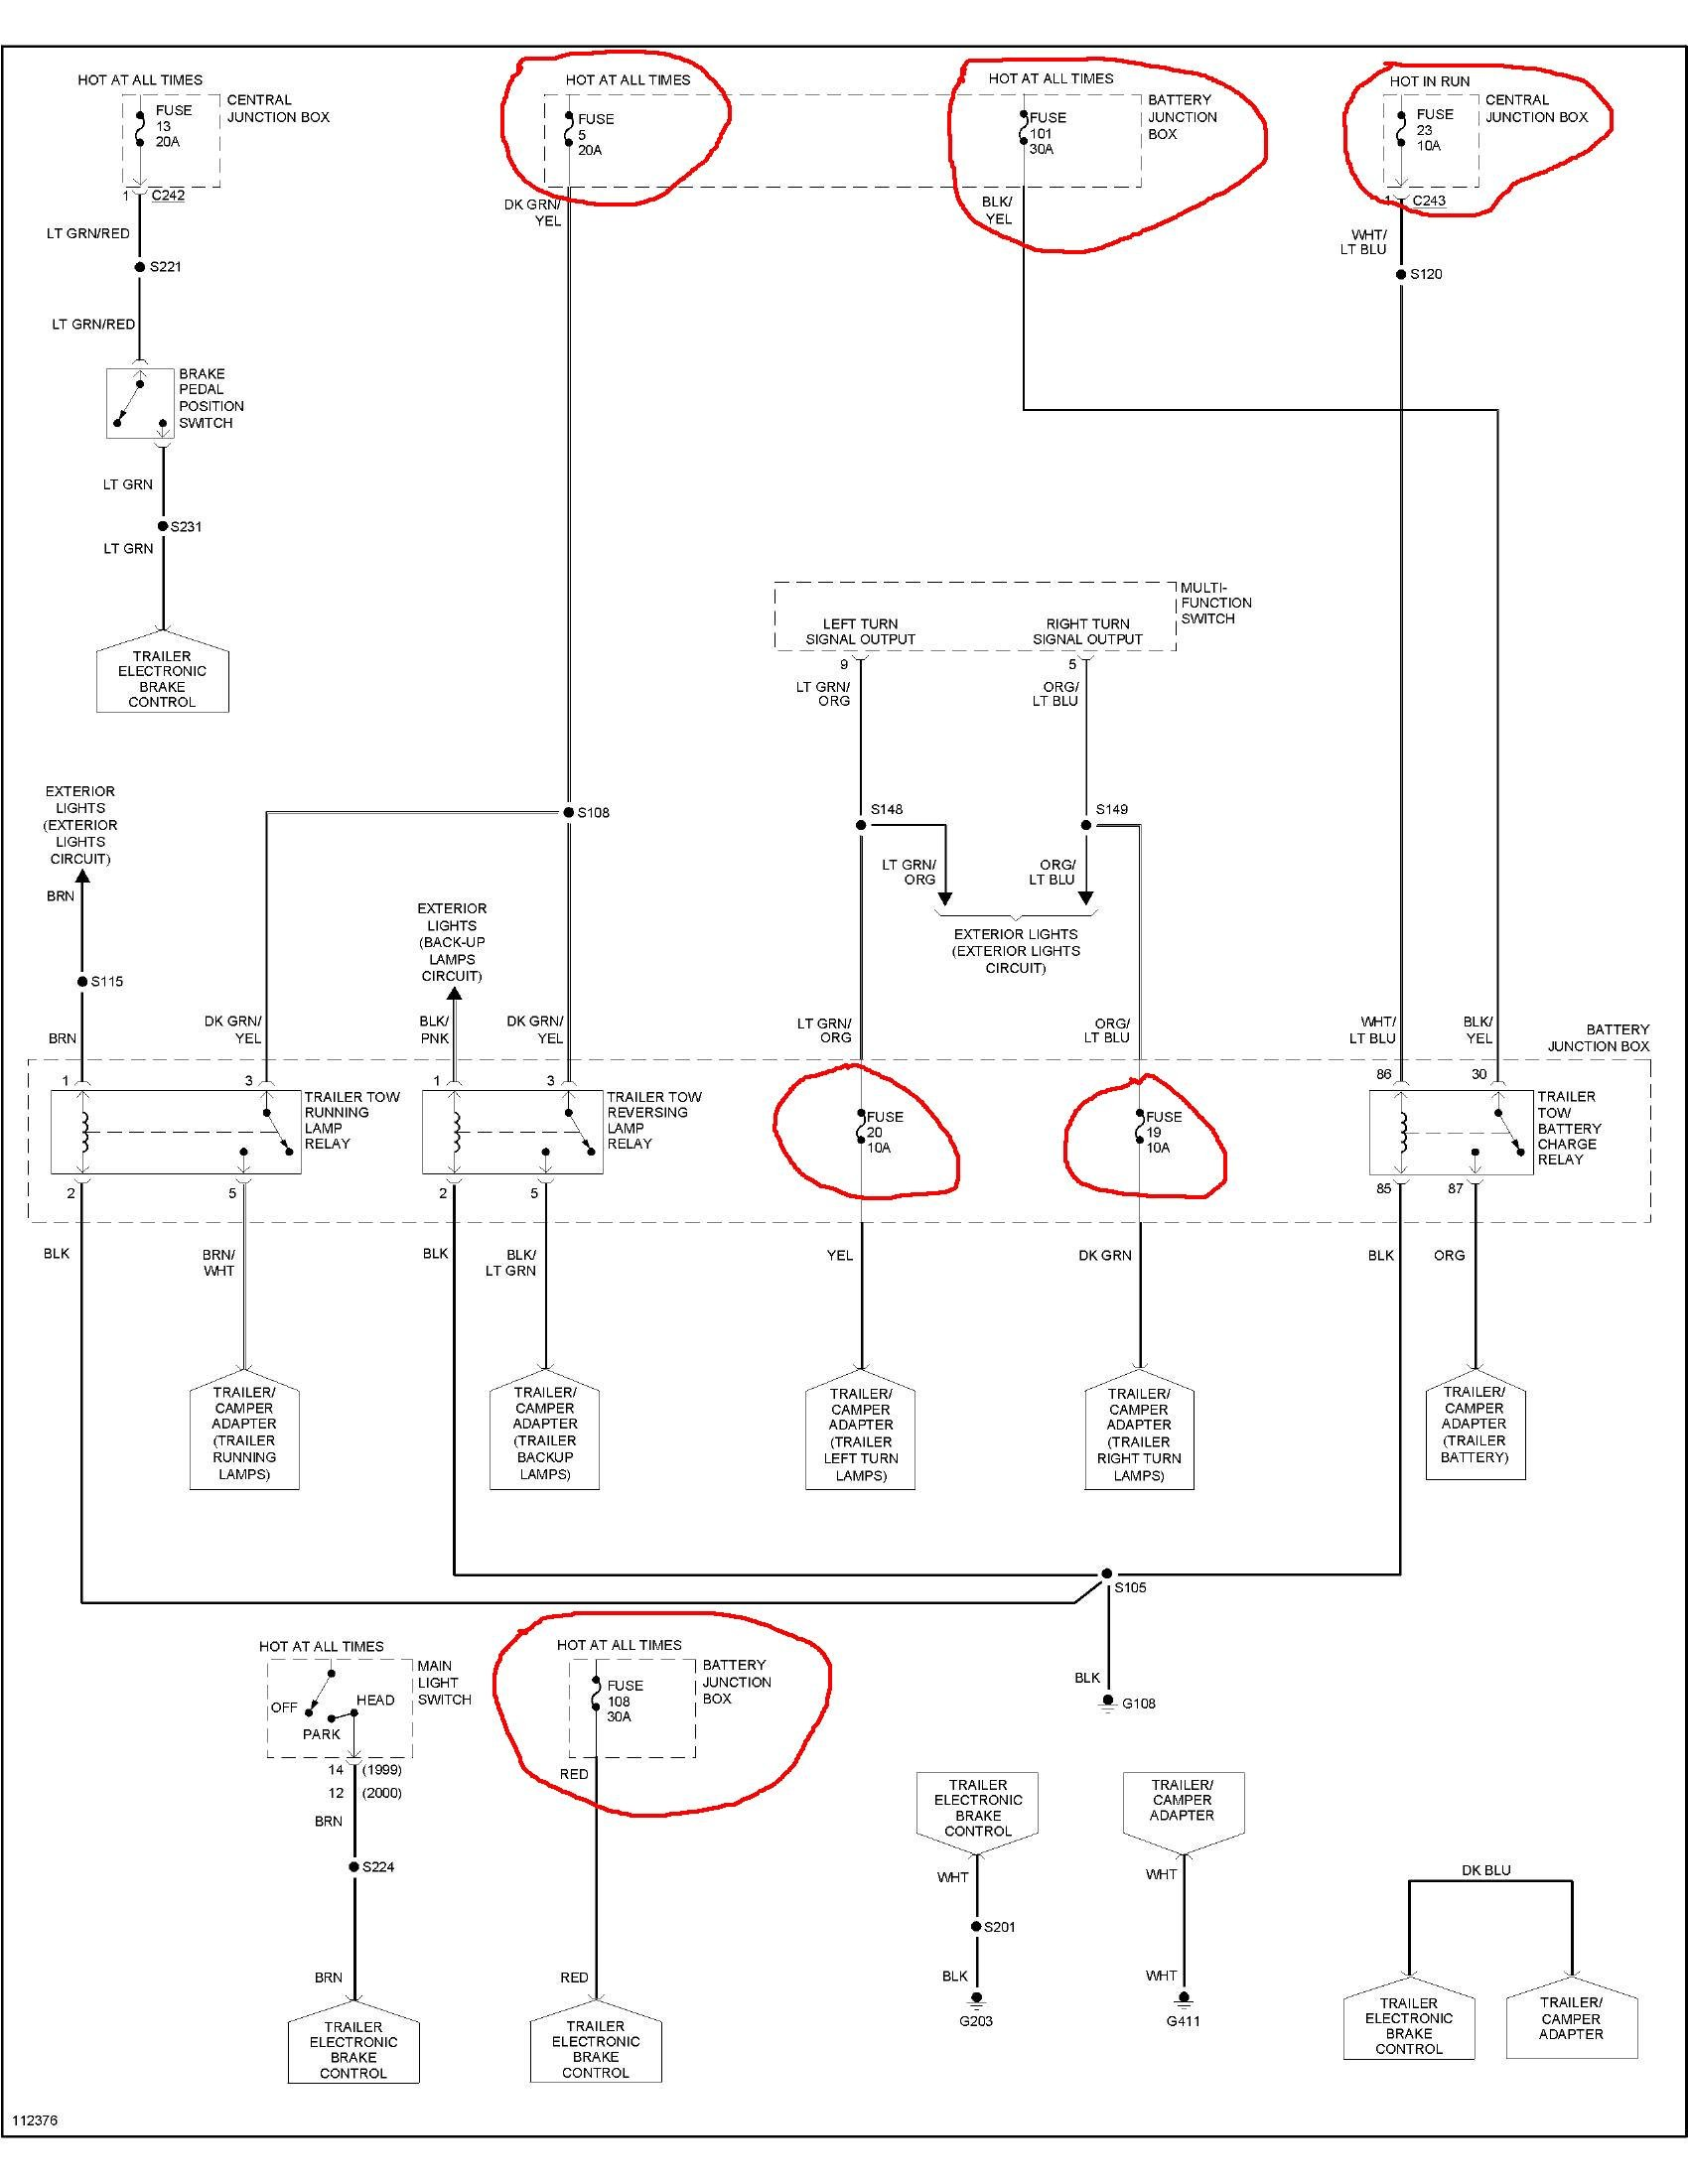 ford f150 trailer plug wiring diagram images gallery of ford f150 trailer plug wiring diagram 2000 f 150 trailer factory installed tow truck lights work